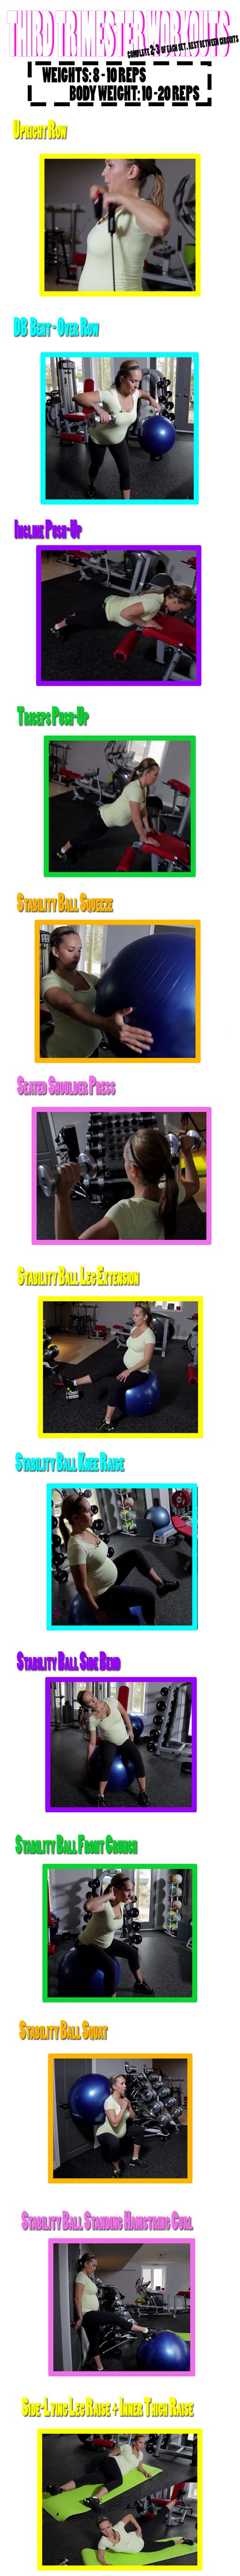 Trimester 3 Pregnancy Workout Video! Great for beginners too! Also a good workout regime for your travels. Click here for the video and Step by Step instructions: http://www.flaviliciousfitness.com/blog/2013/06/19/trimester-3-pregnancy-workout-video/